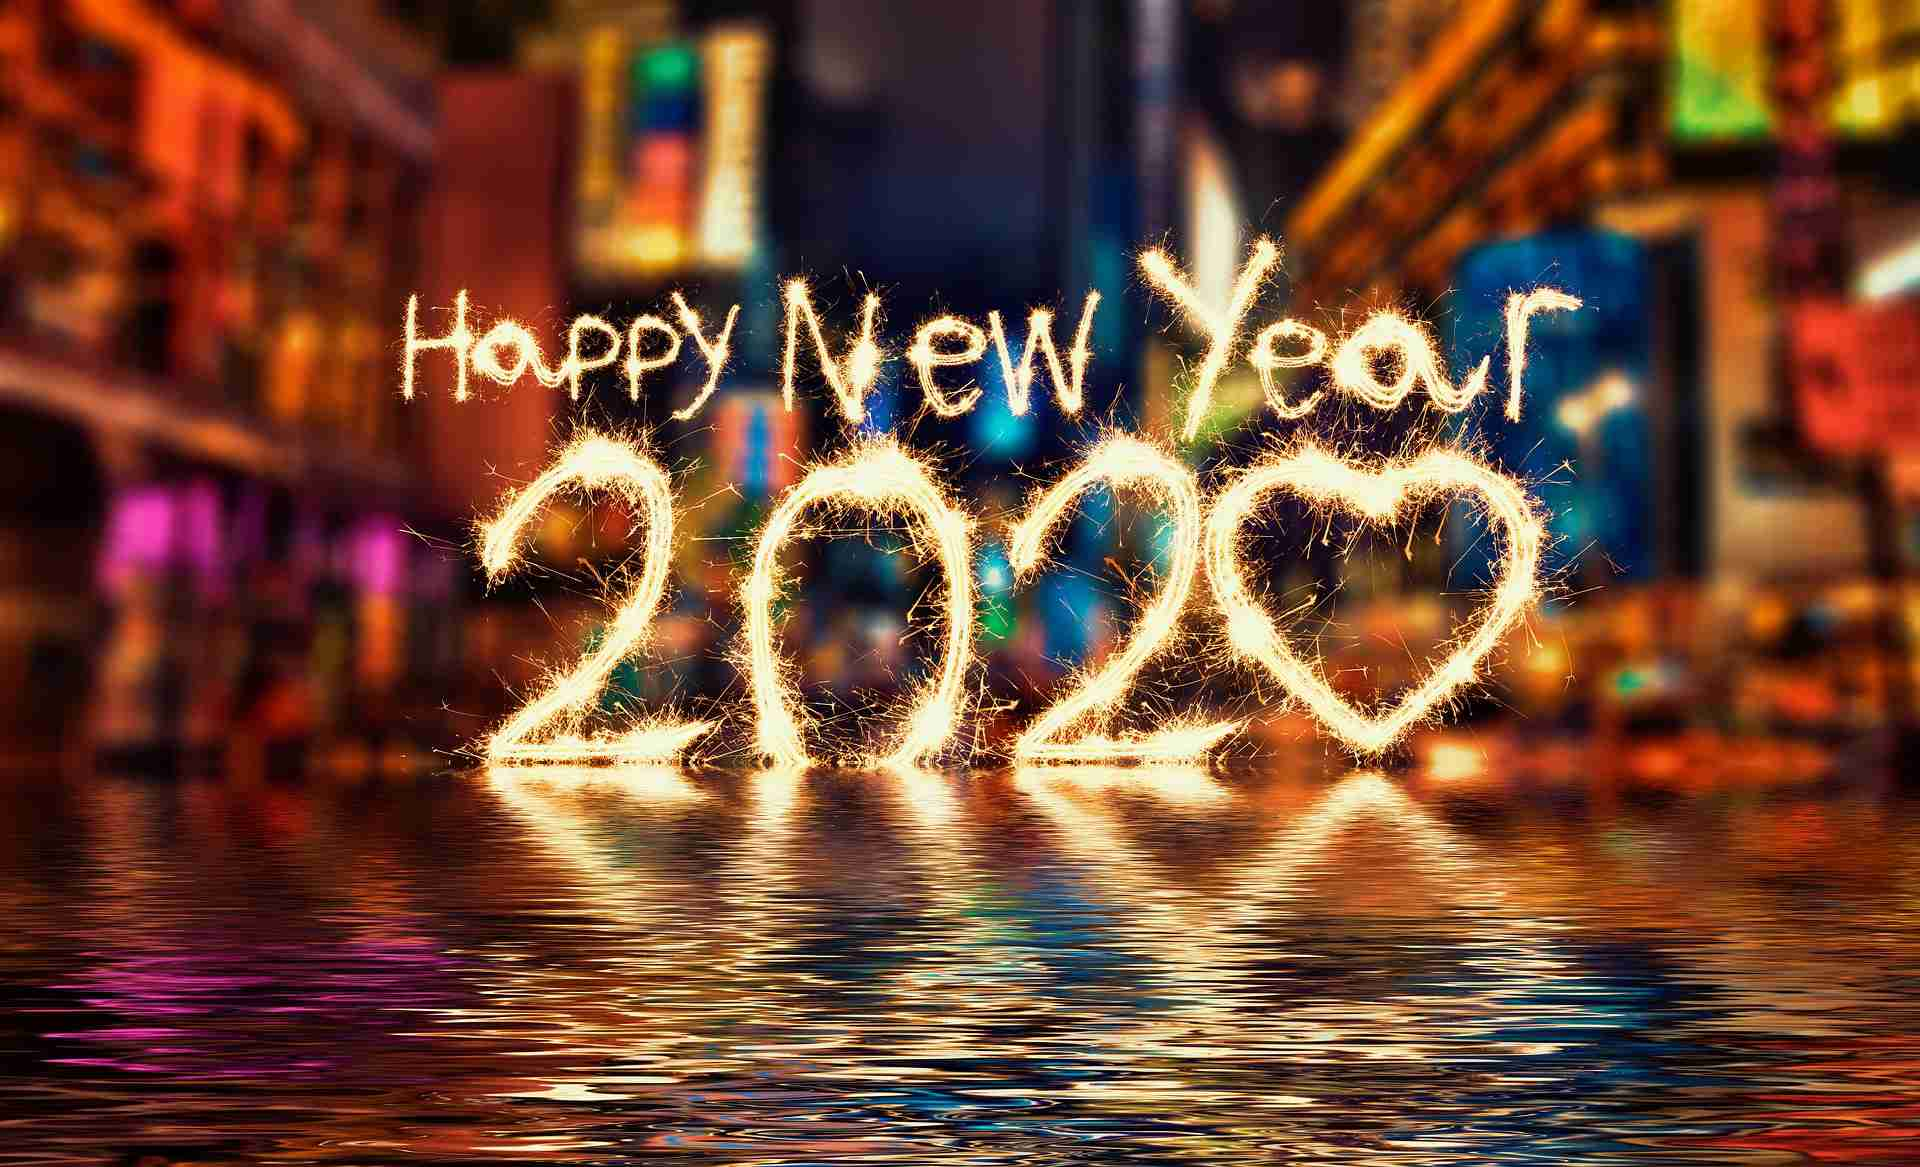 Free Download Besthappy New Year 2020 Hd Wallpaper Images Download